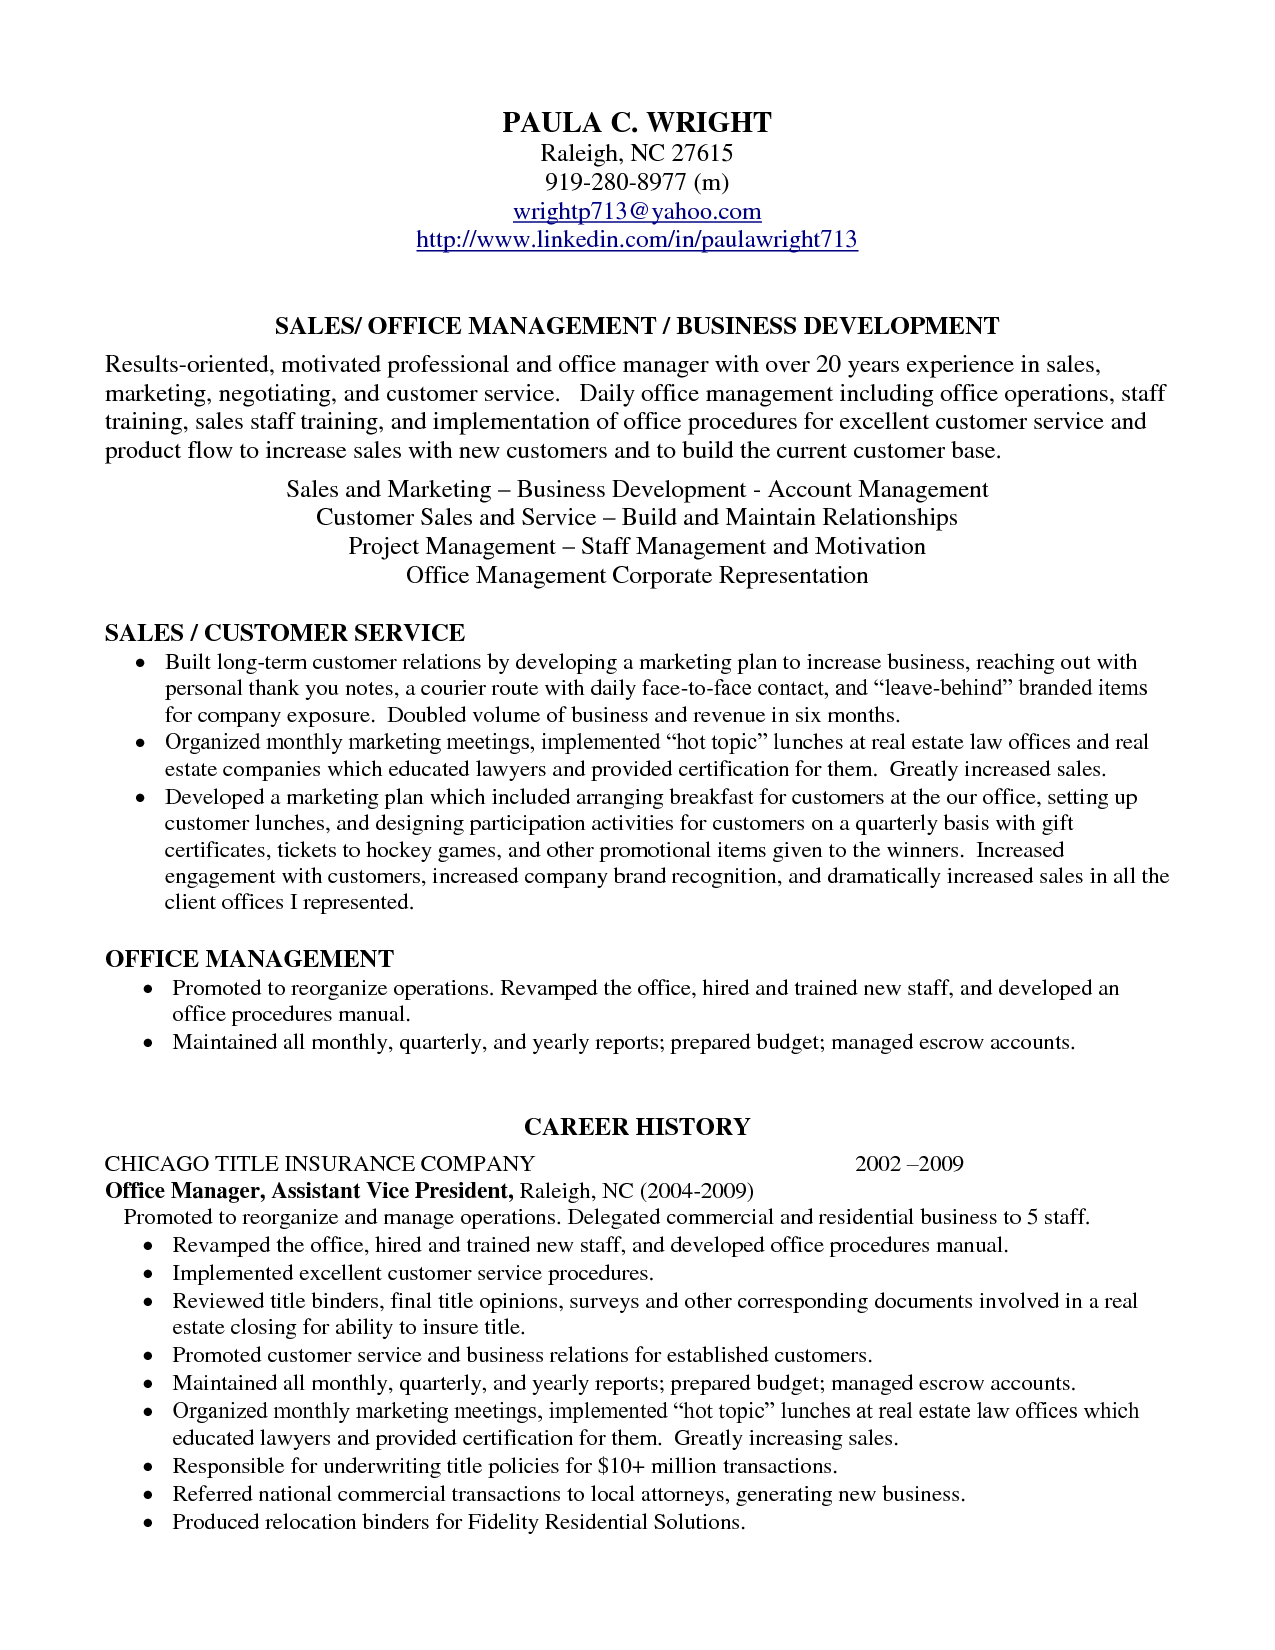 professional profile resume examples resume professional profile examples - Professional Marketing Resume